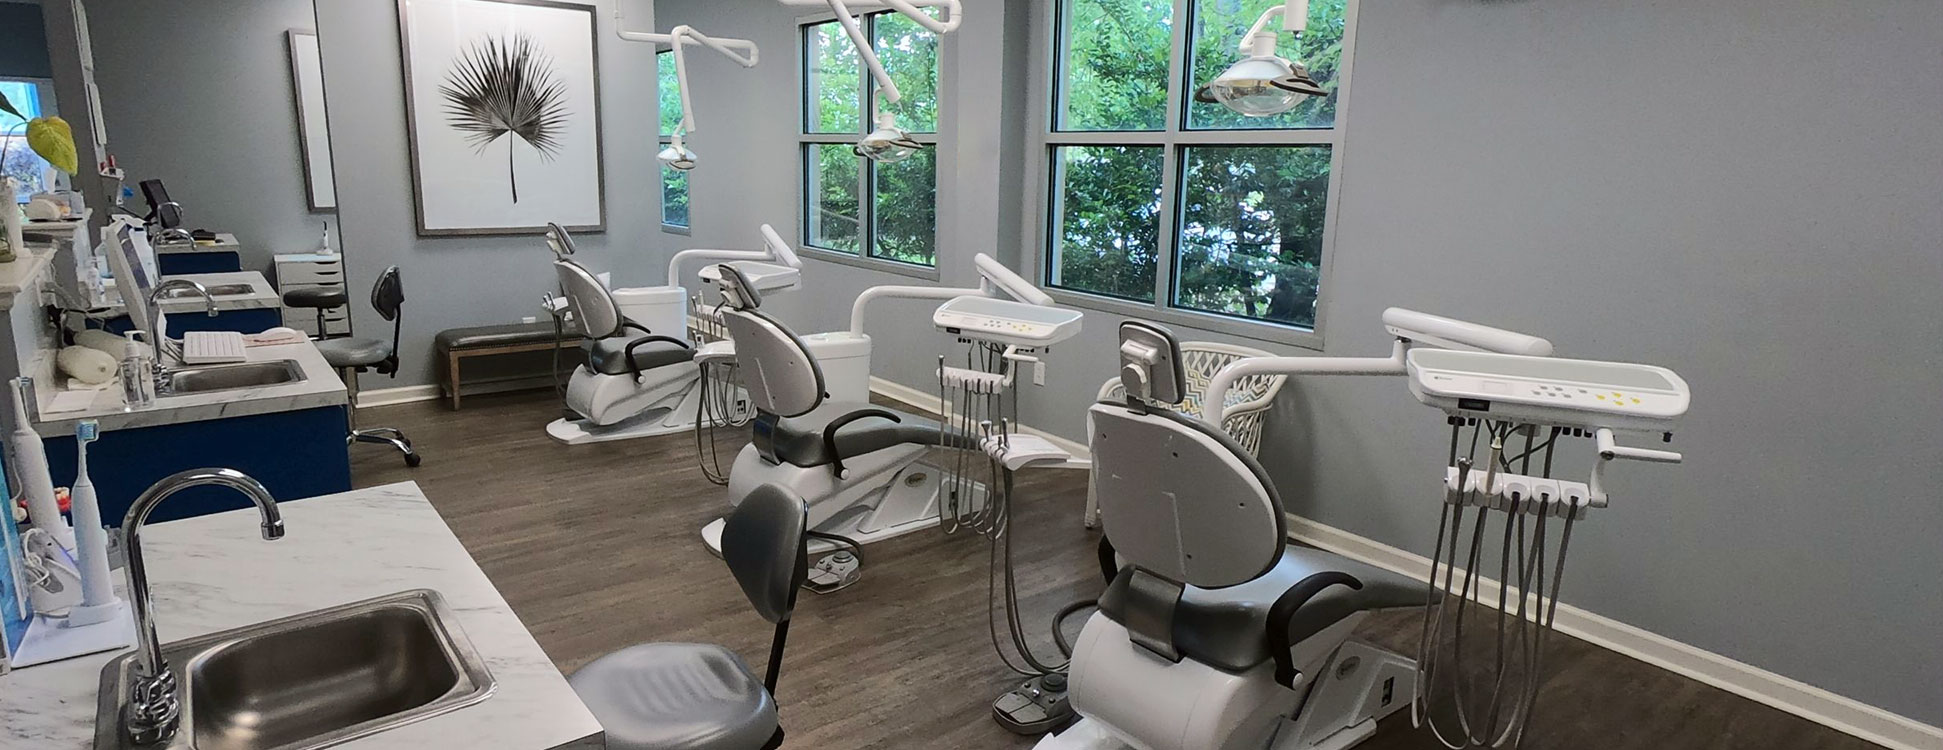 Caring and Qualified Dental Specialists